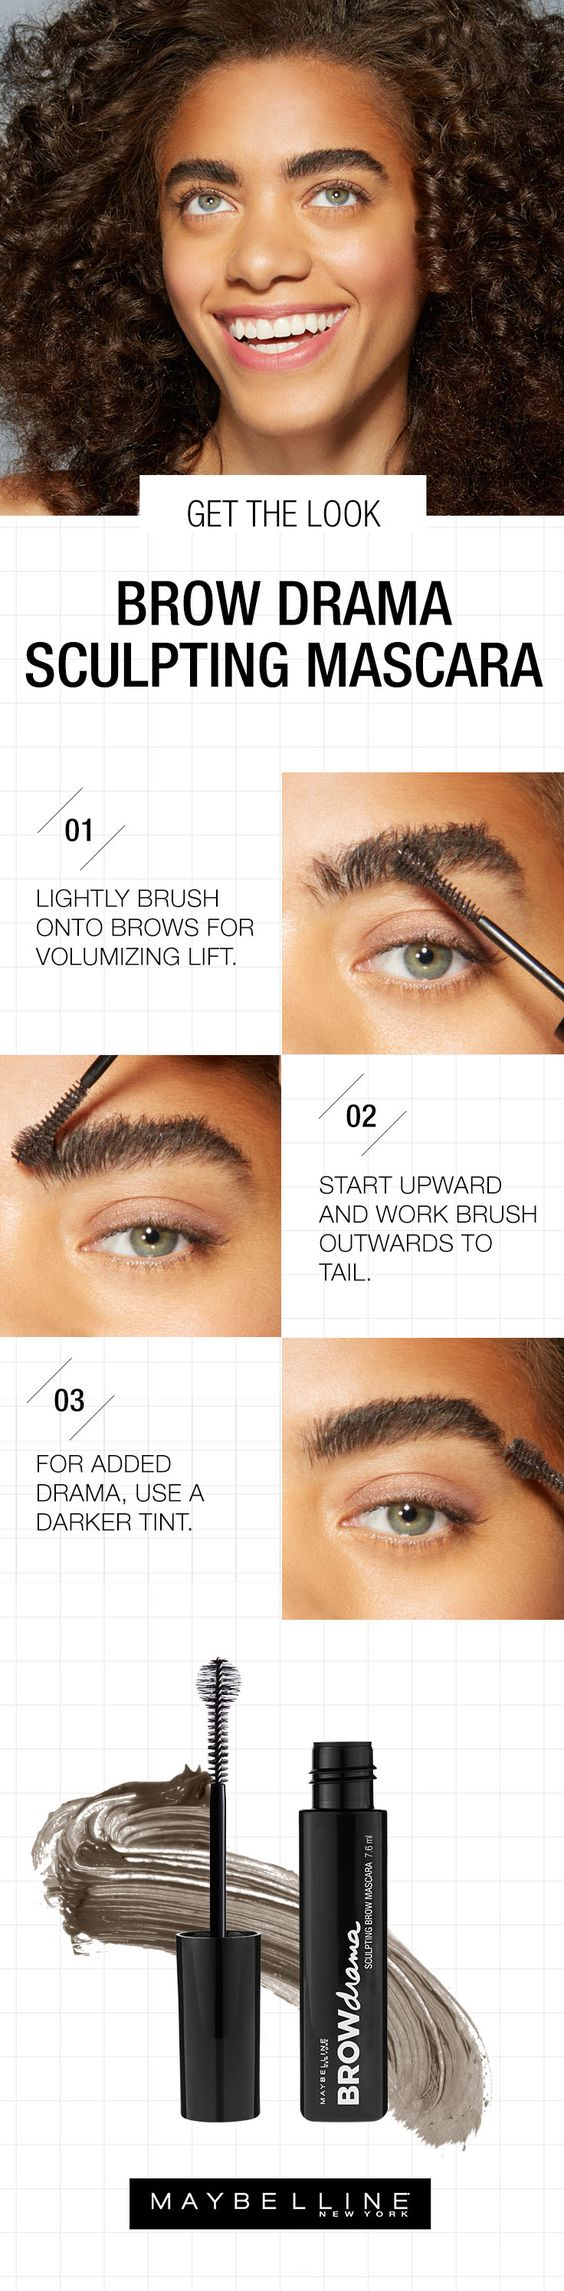 Tame strays and fly aways with Maybelline's Brow Drama Fiber Sculpting Mascara. The perfect ball brush and tinted formula sculpt brows for some serious added oomph. To get the look follow this simple step by step eyebrow tutorial for tamed, bold brows. Step 1: Lightly brush onto brows for volumizing lift. Step 2: Start upward and work brush outwards to tail. Step 3: For added drama, use a darker tint.